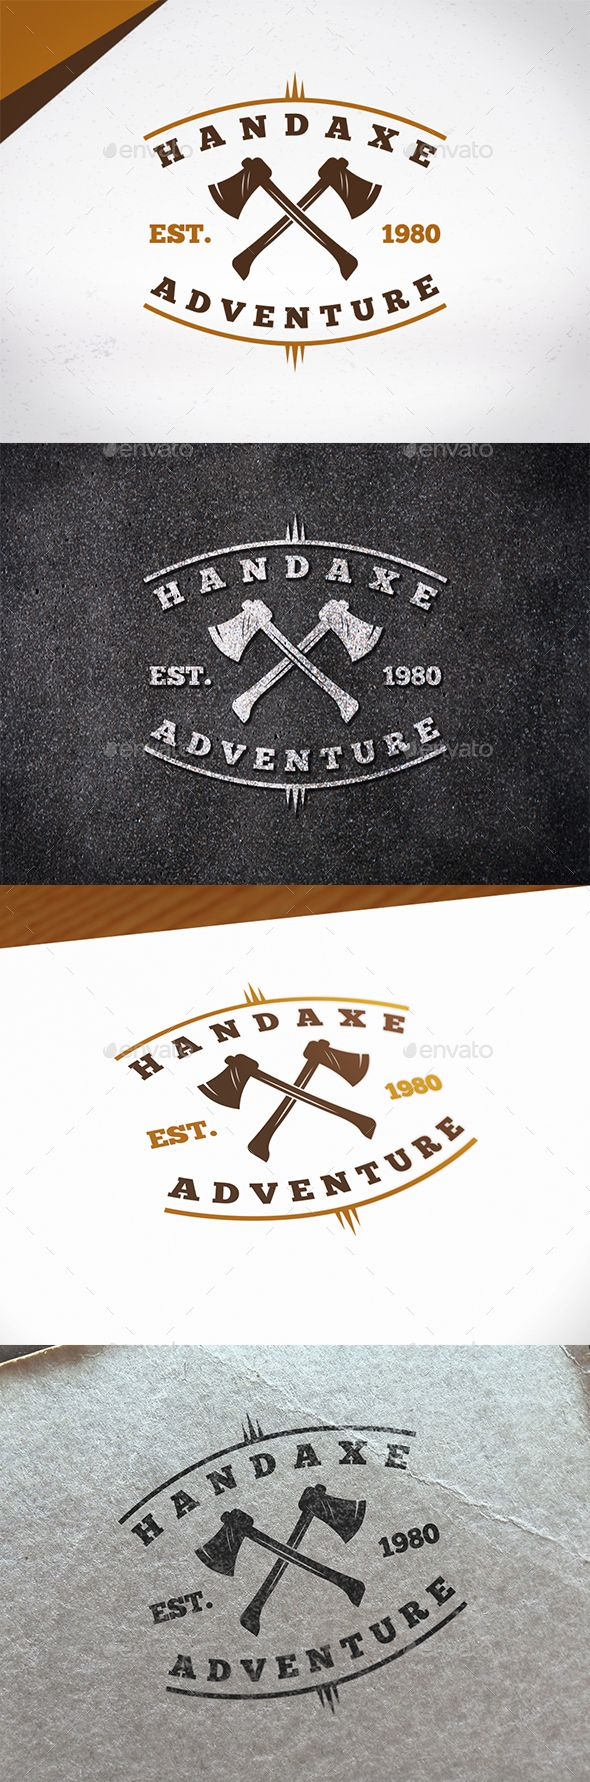 Hand Axe Logo Template - Crests Logo Templates Download here : https://graphicriver.net/item/hand-axe-logo-template/19989783?s_rank=174&ref=Al-fatih